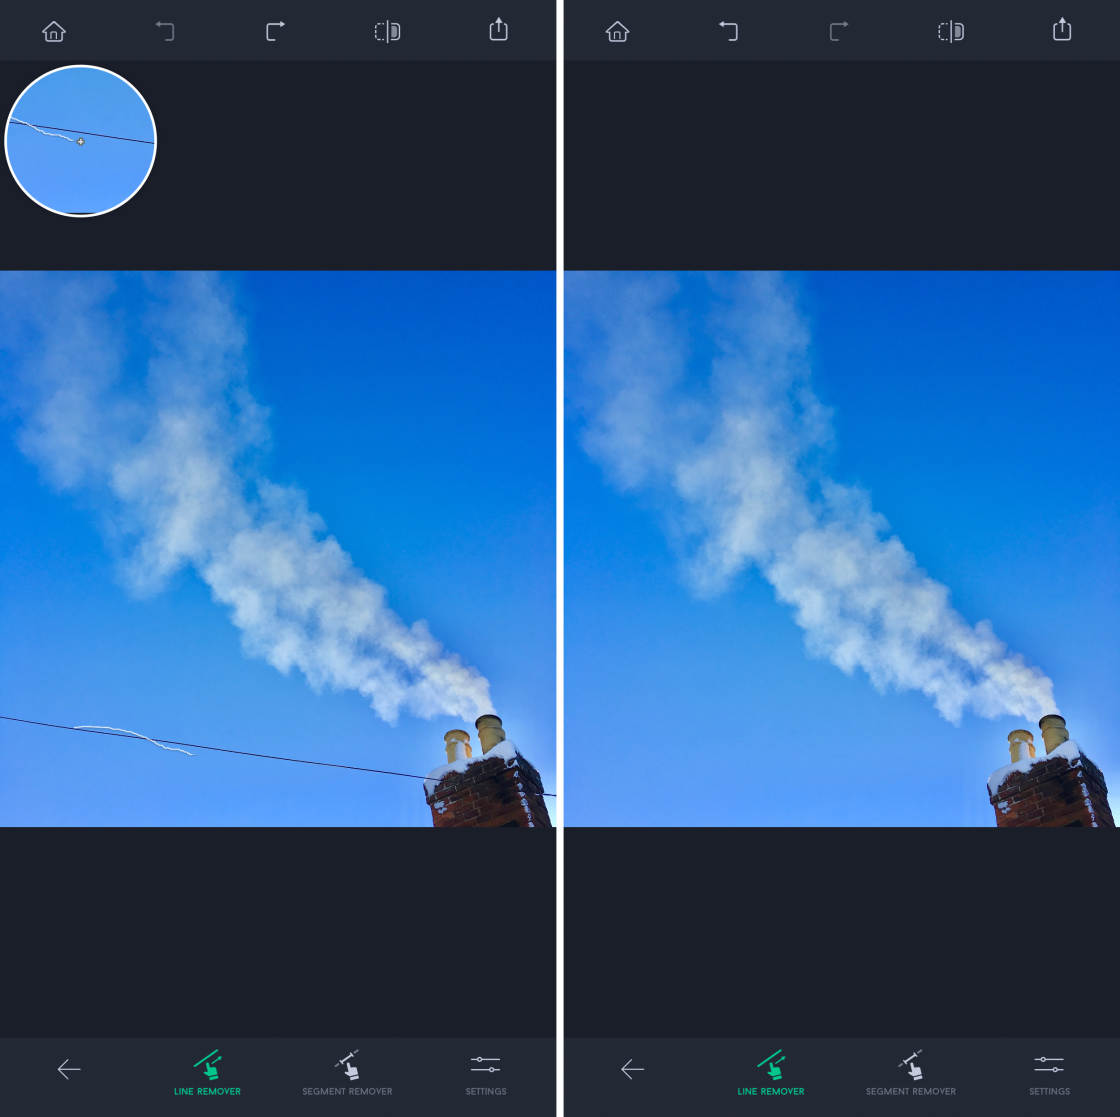 Removing Objects From Your iPhone Photos: The Ultimate Guide